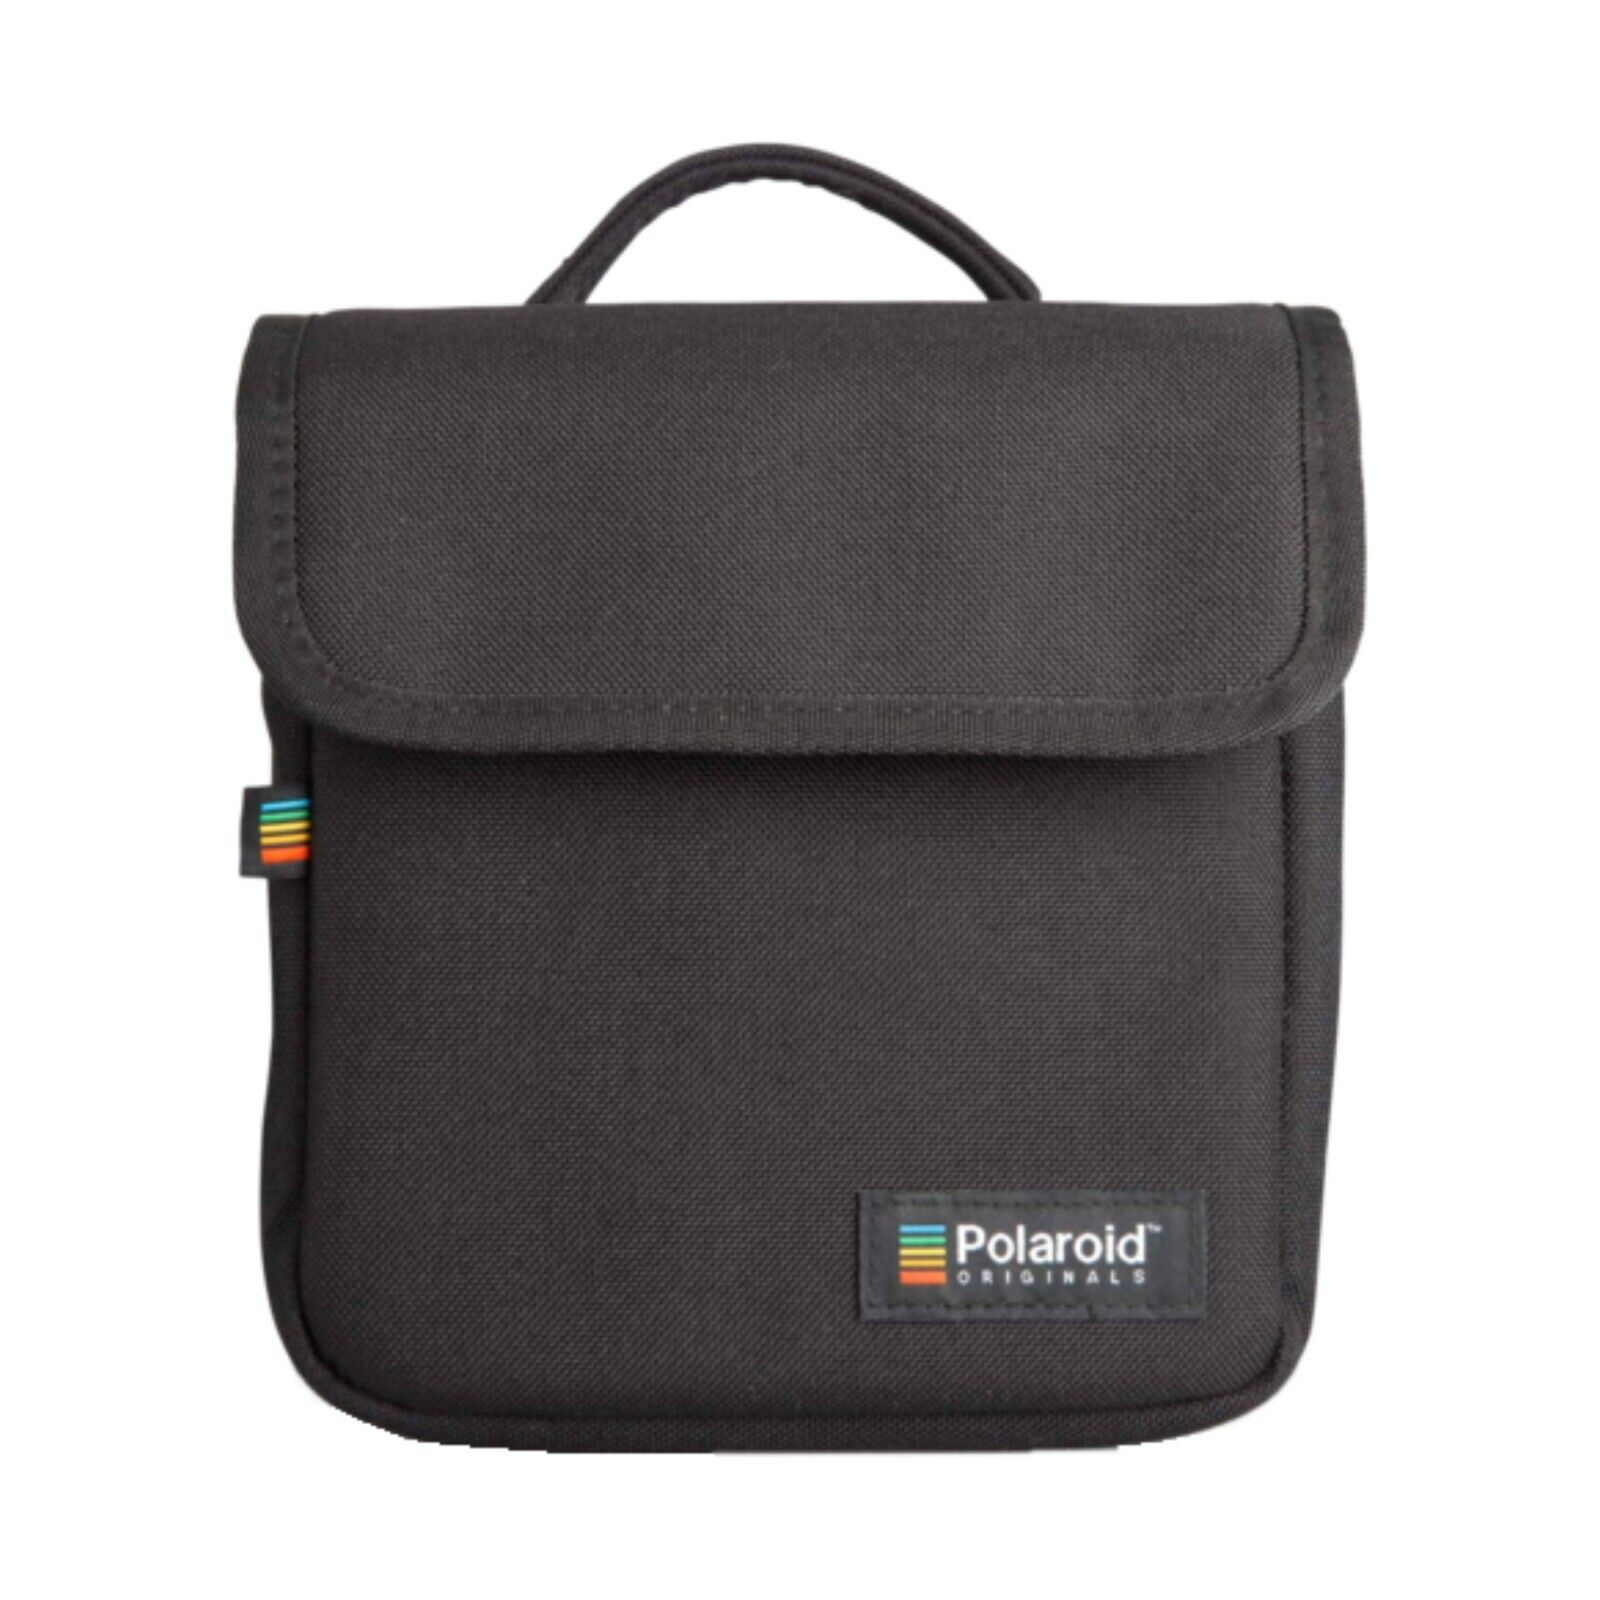 Polaroid Case Box Camera Bag, Black